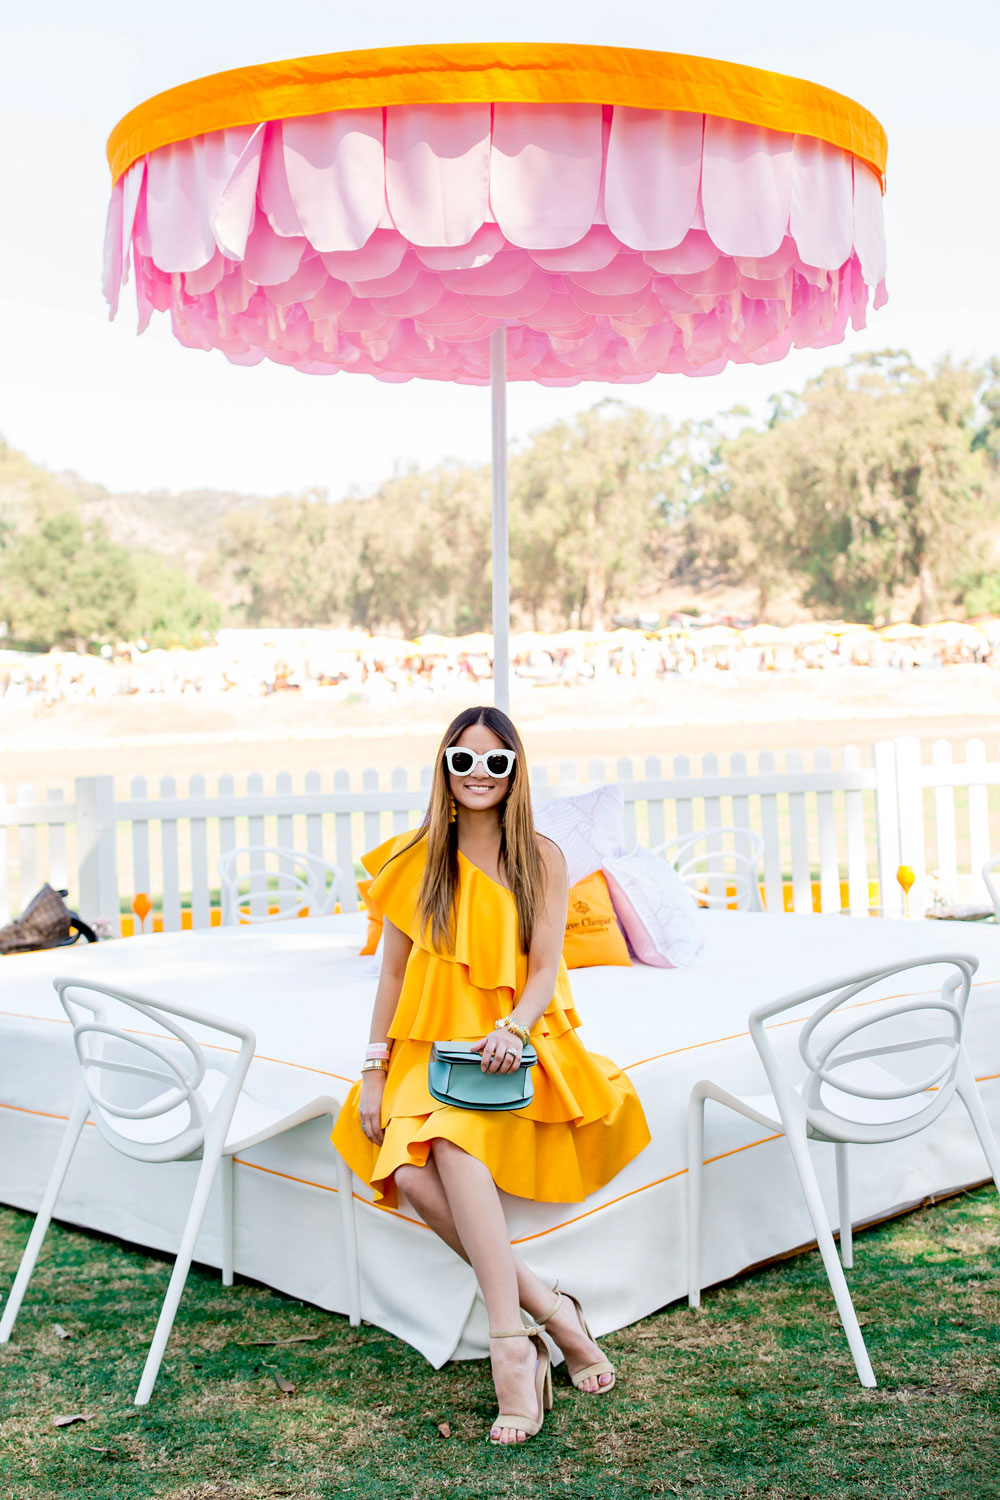 Jennifer Lake Veuve Clicquot Polo Classic Los Angeles 2017